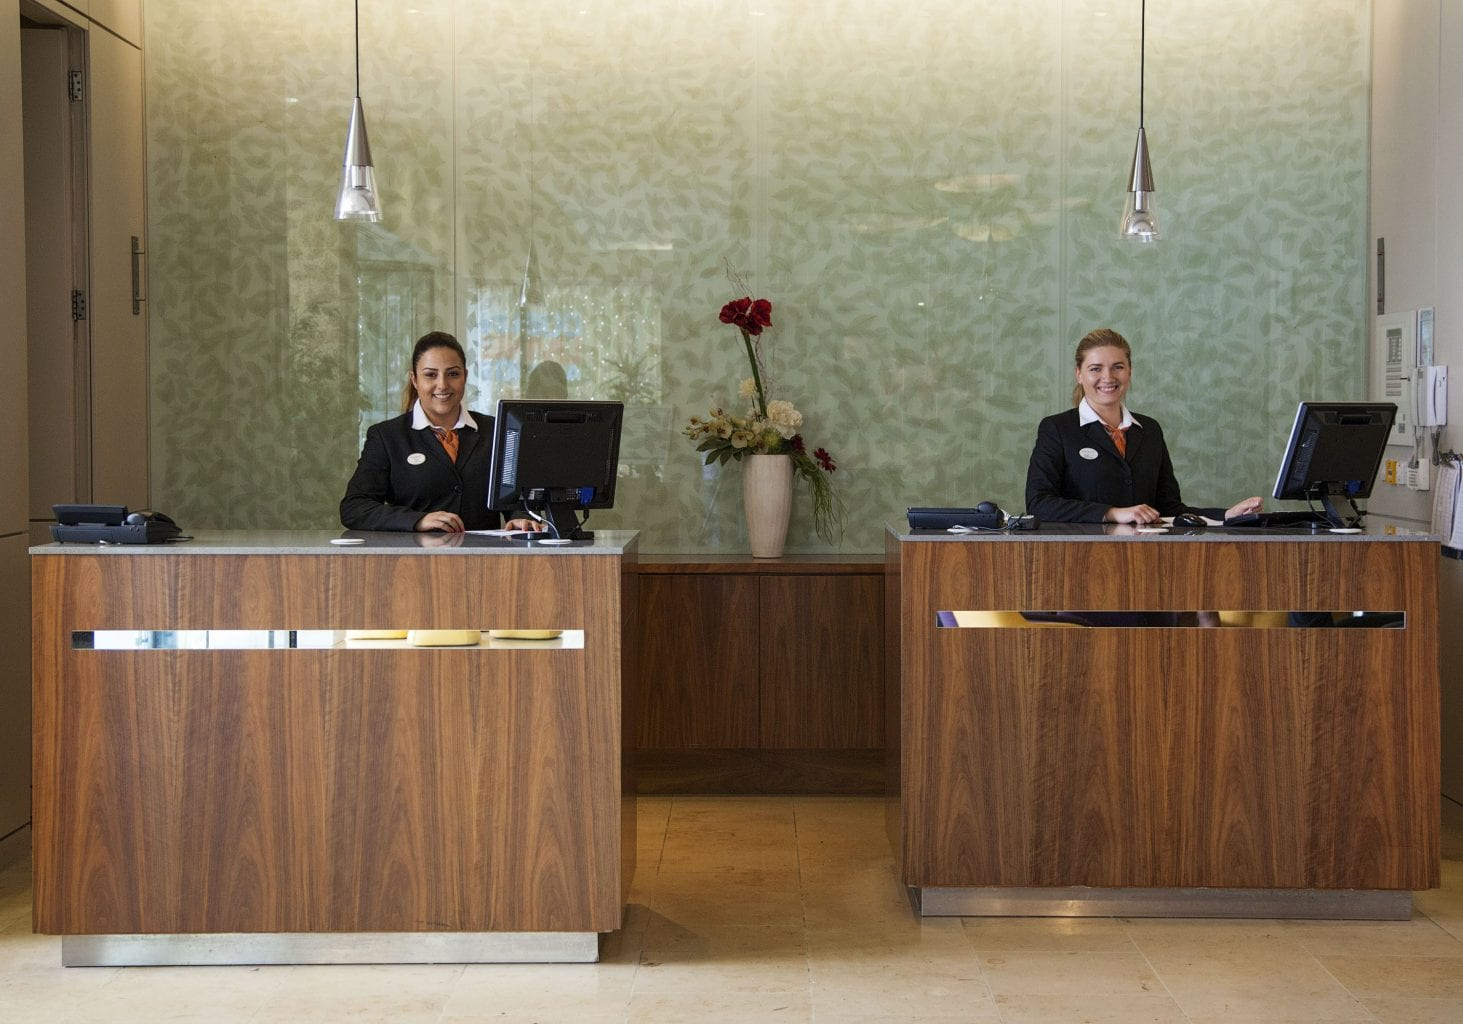 Our friendly team look forward to welcoming you to Maldron Hotel Smithfield Dublin